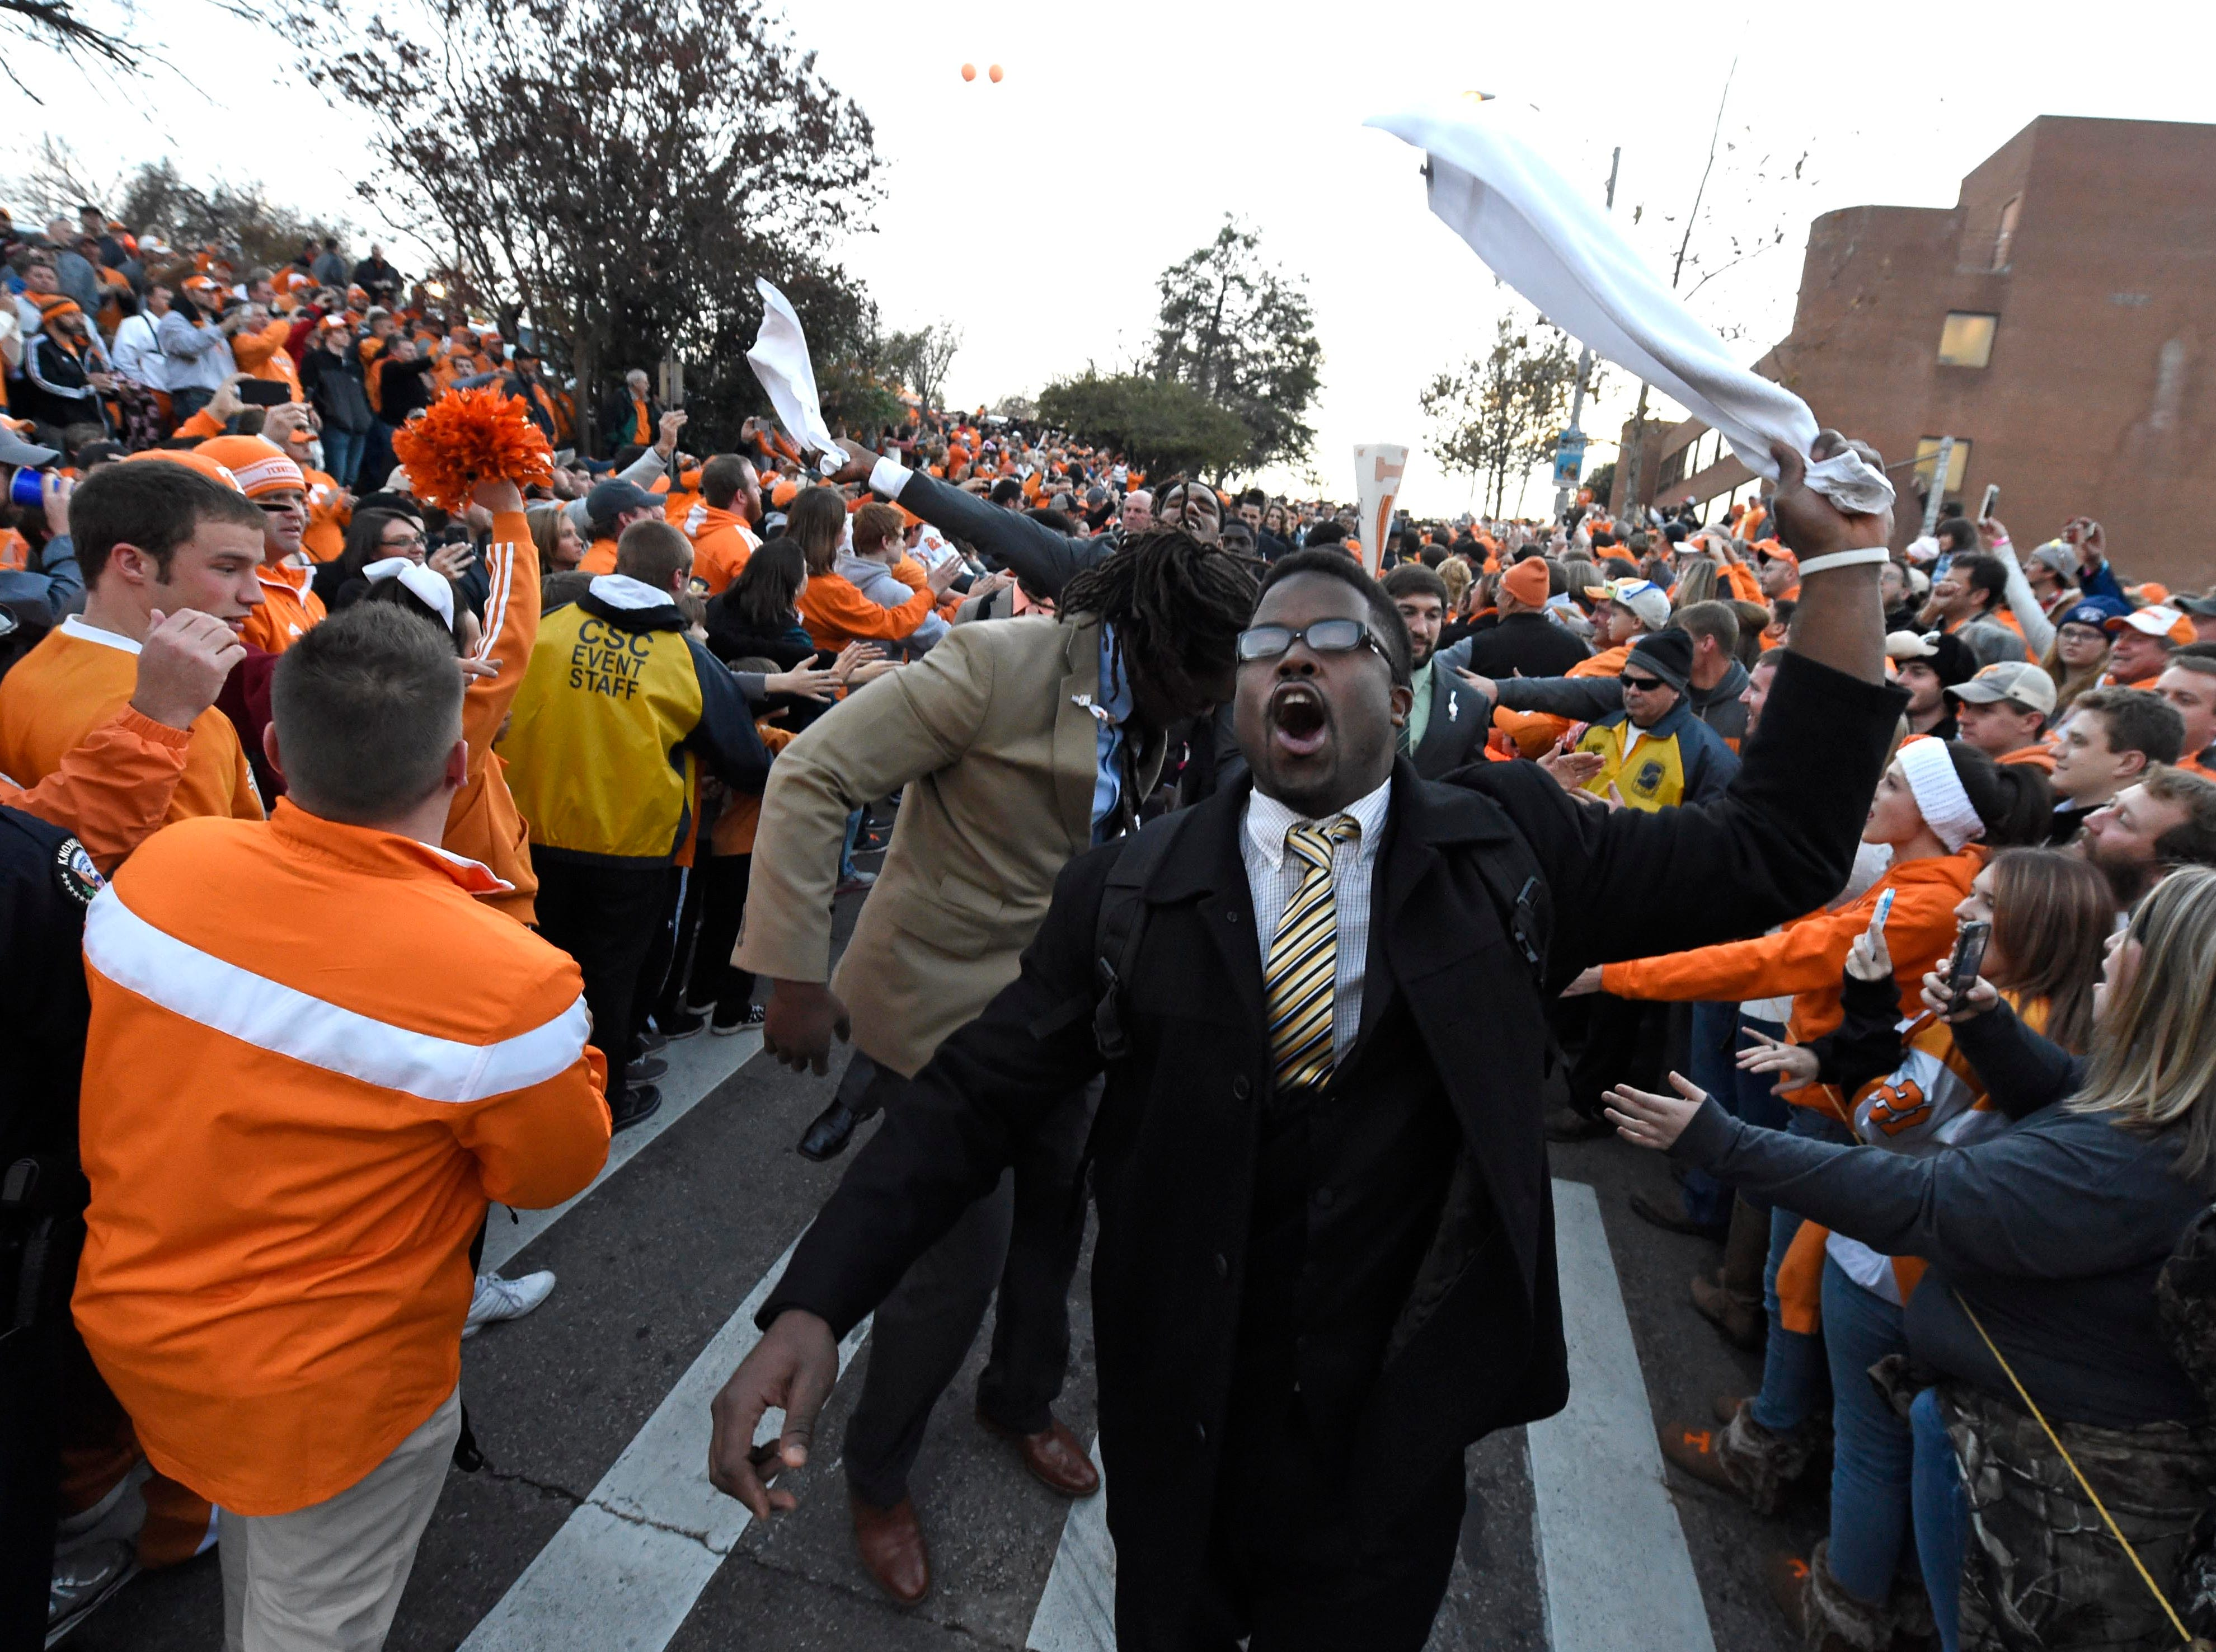 Tennessee football players whoop with fans while descending the Vol Walk before the game against Missouri at Neyland Stadium, Saturday, Nov.22, 2014 in Knoxville, Tenn.